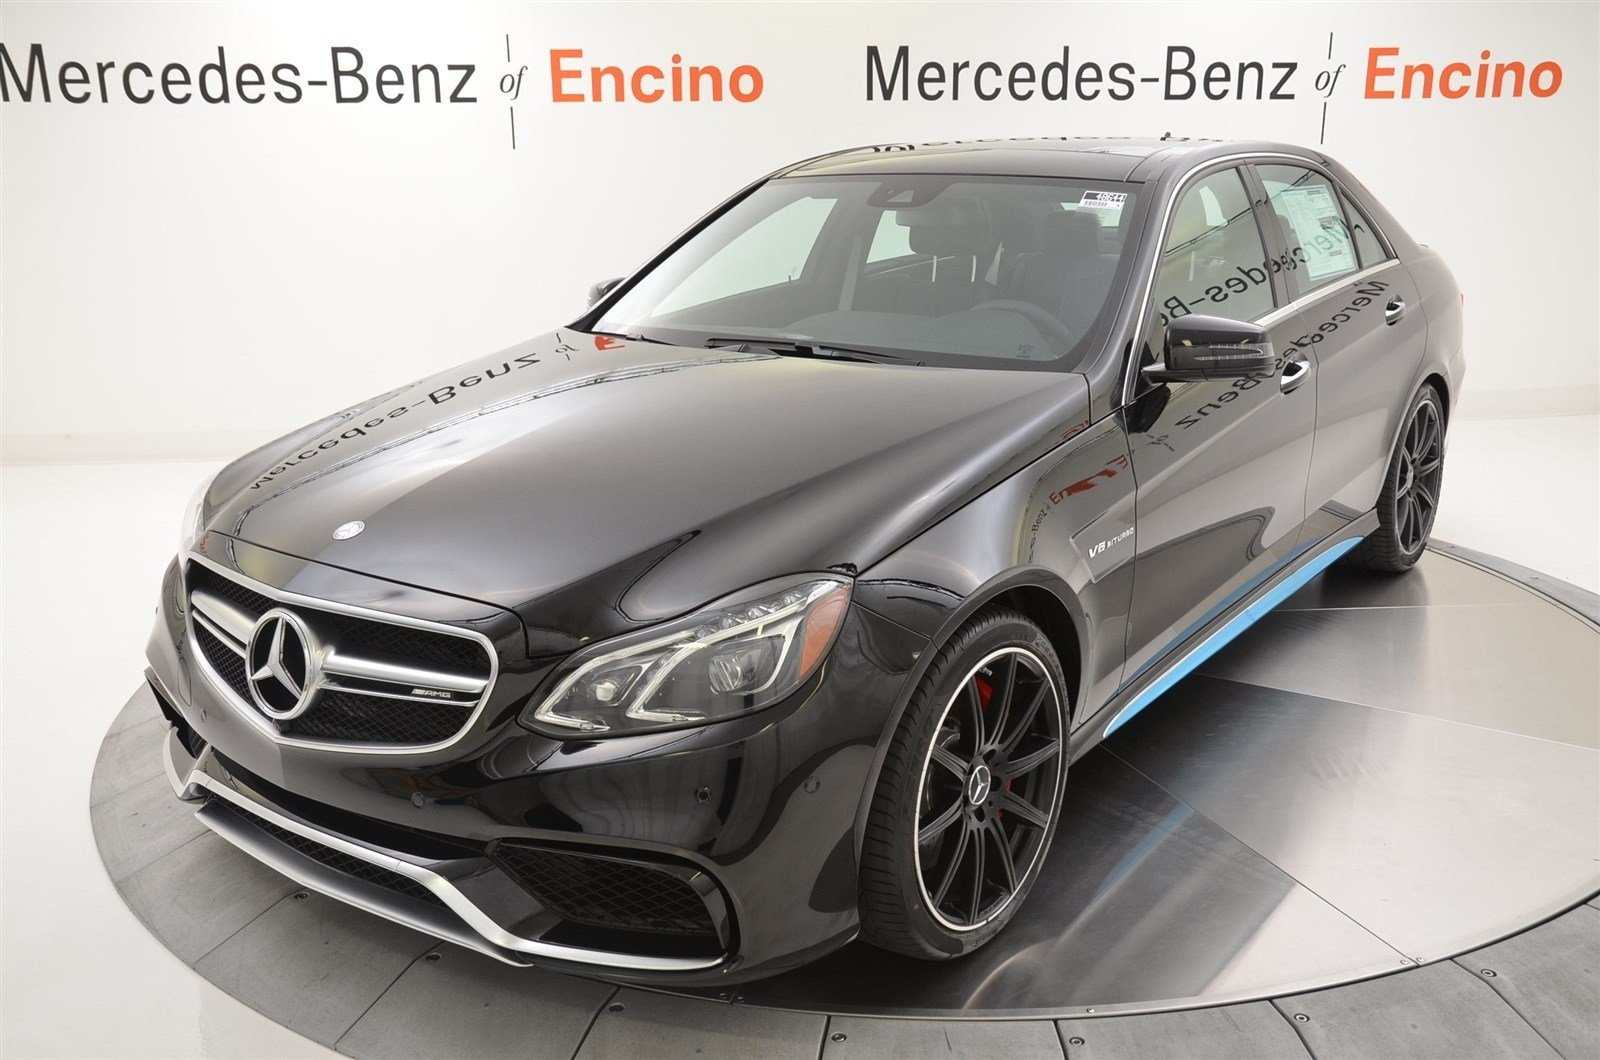 new 2016 mercedes benz e class amg e 63 s sedan sedan in encino 48644 mercedes benz of encino. Black Bedroom Furniture Sets. Home Design Ideas